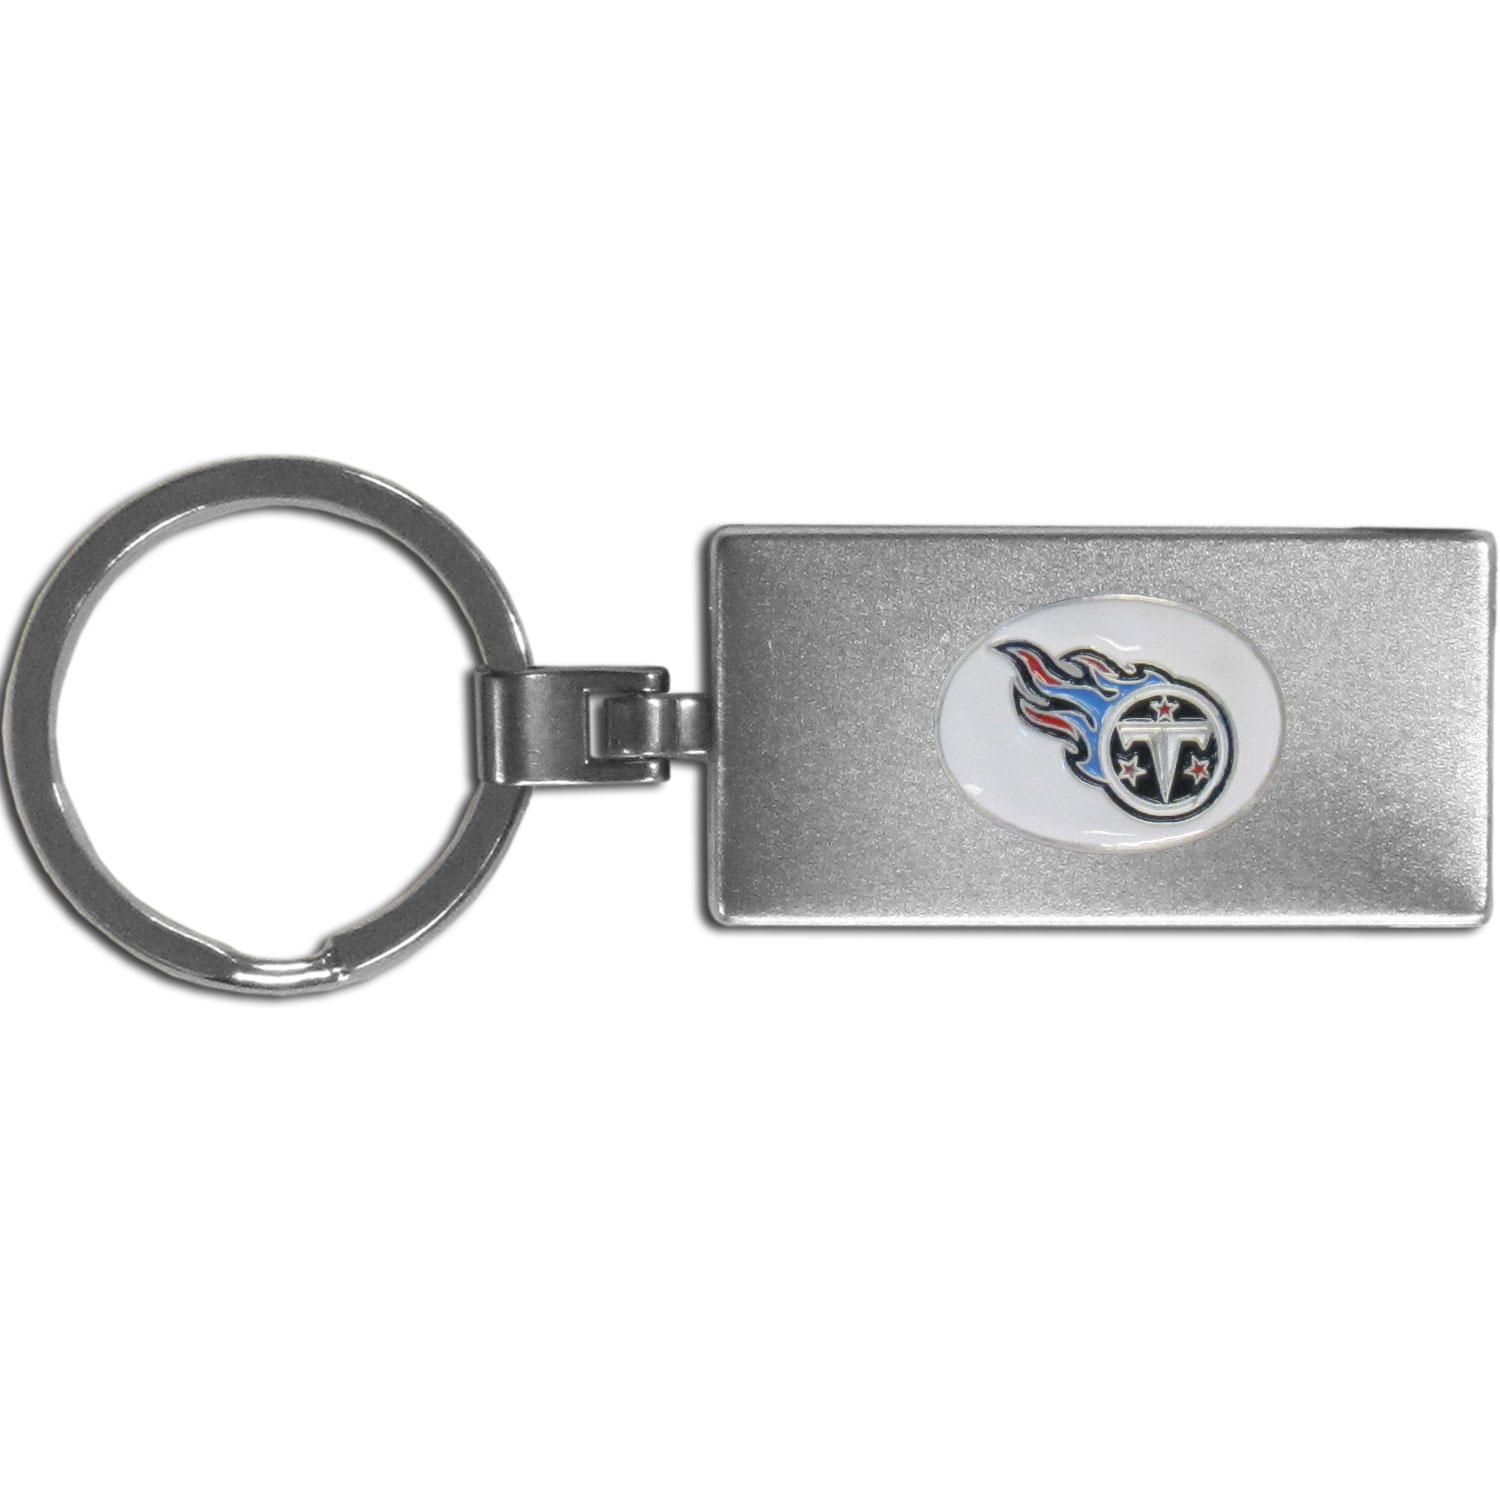 Tennessee Titans Multi-tool Key Chain - Be the hero at the tailgate, camping, or on a Friday night with your Tennessee Titans Multi-Tool Keychain which comes complete with bottle opener, scissors, knife, nail file and screw driver. Be it opening a package or a beverage Siskiyou's Multi-Tool Keychain goes wherever your keys do. The keychain hangs at 4 inches long when closed.